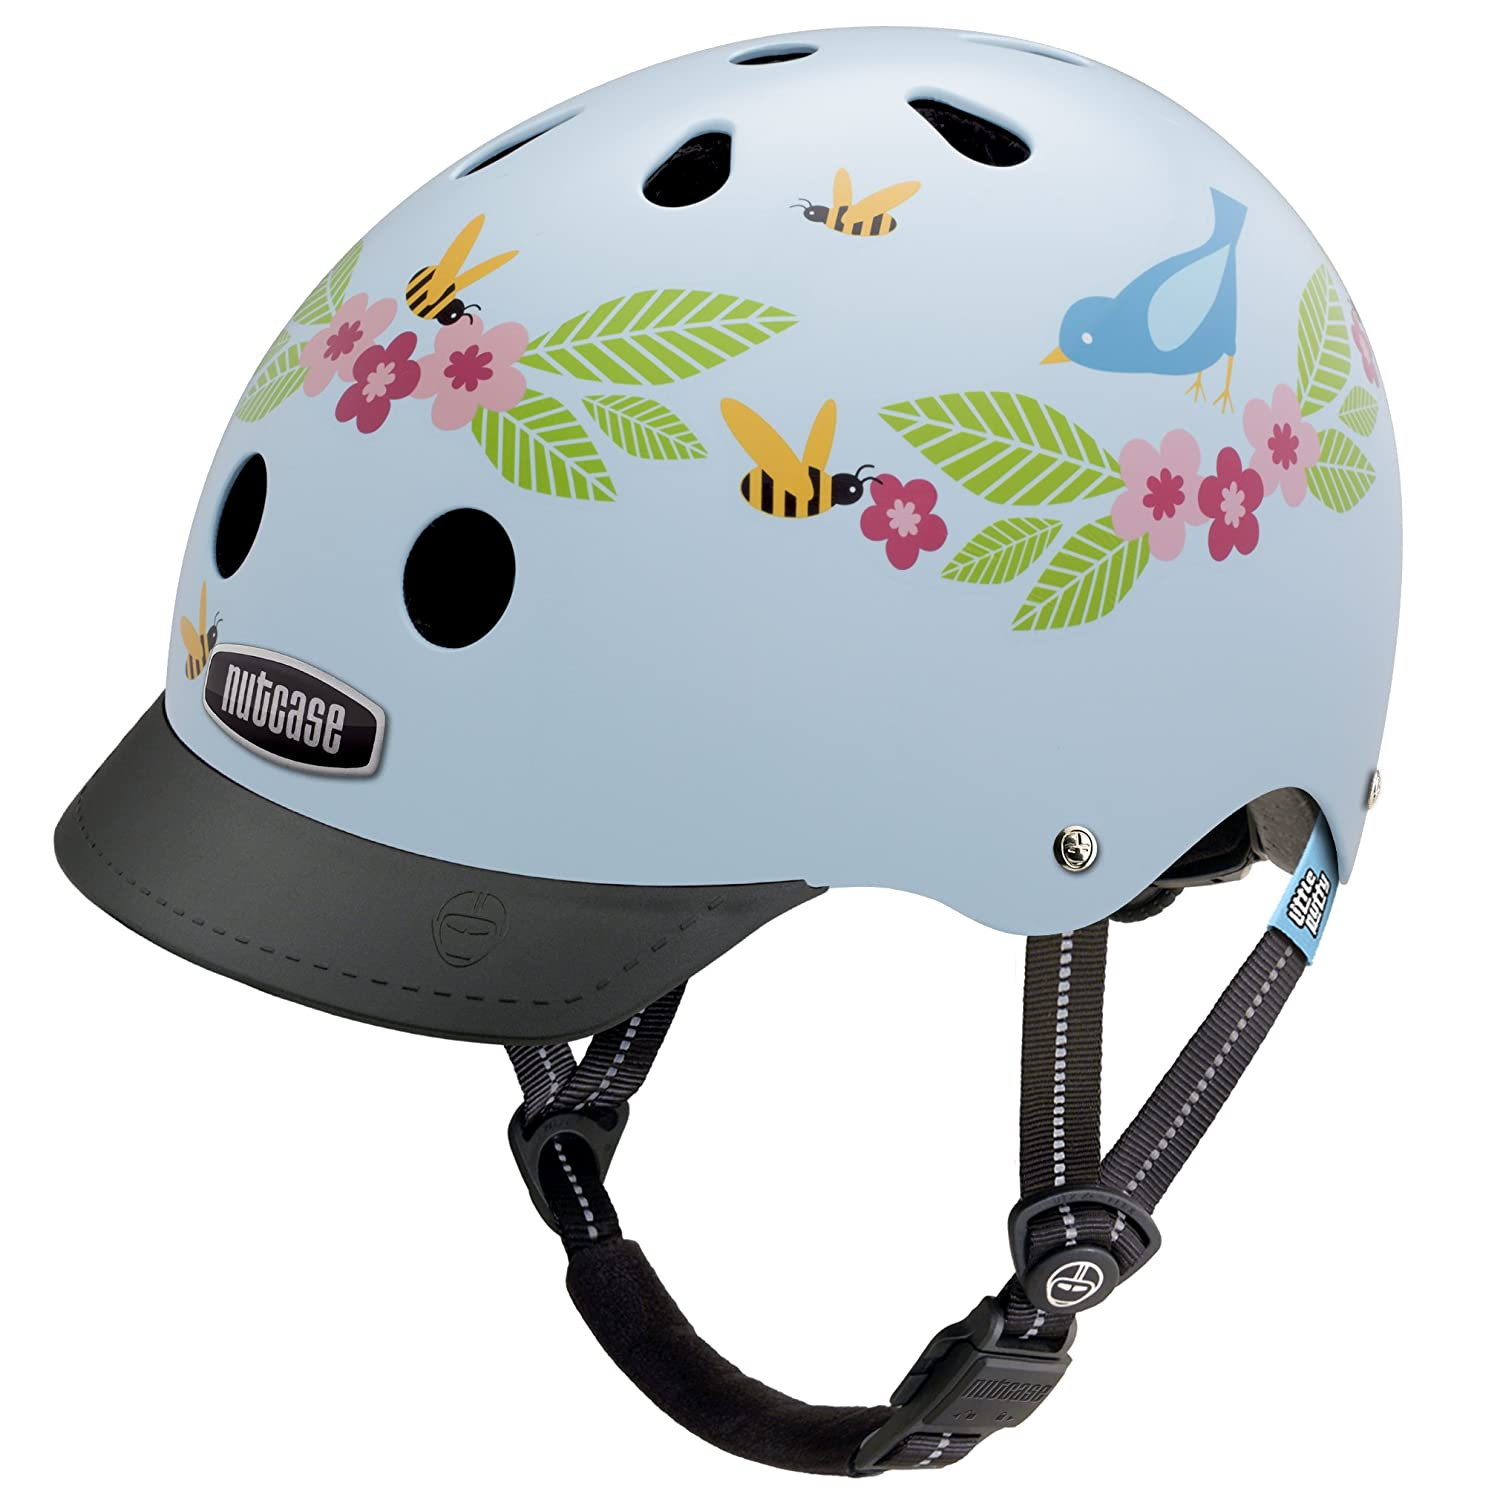 Nutcase Kinder Little Nutty Helm Mehrfarbig Amazon Sport & Freizeit